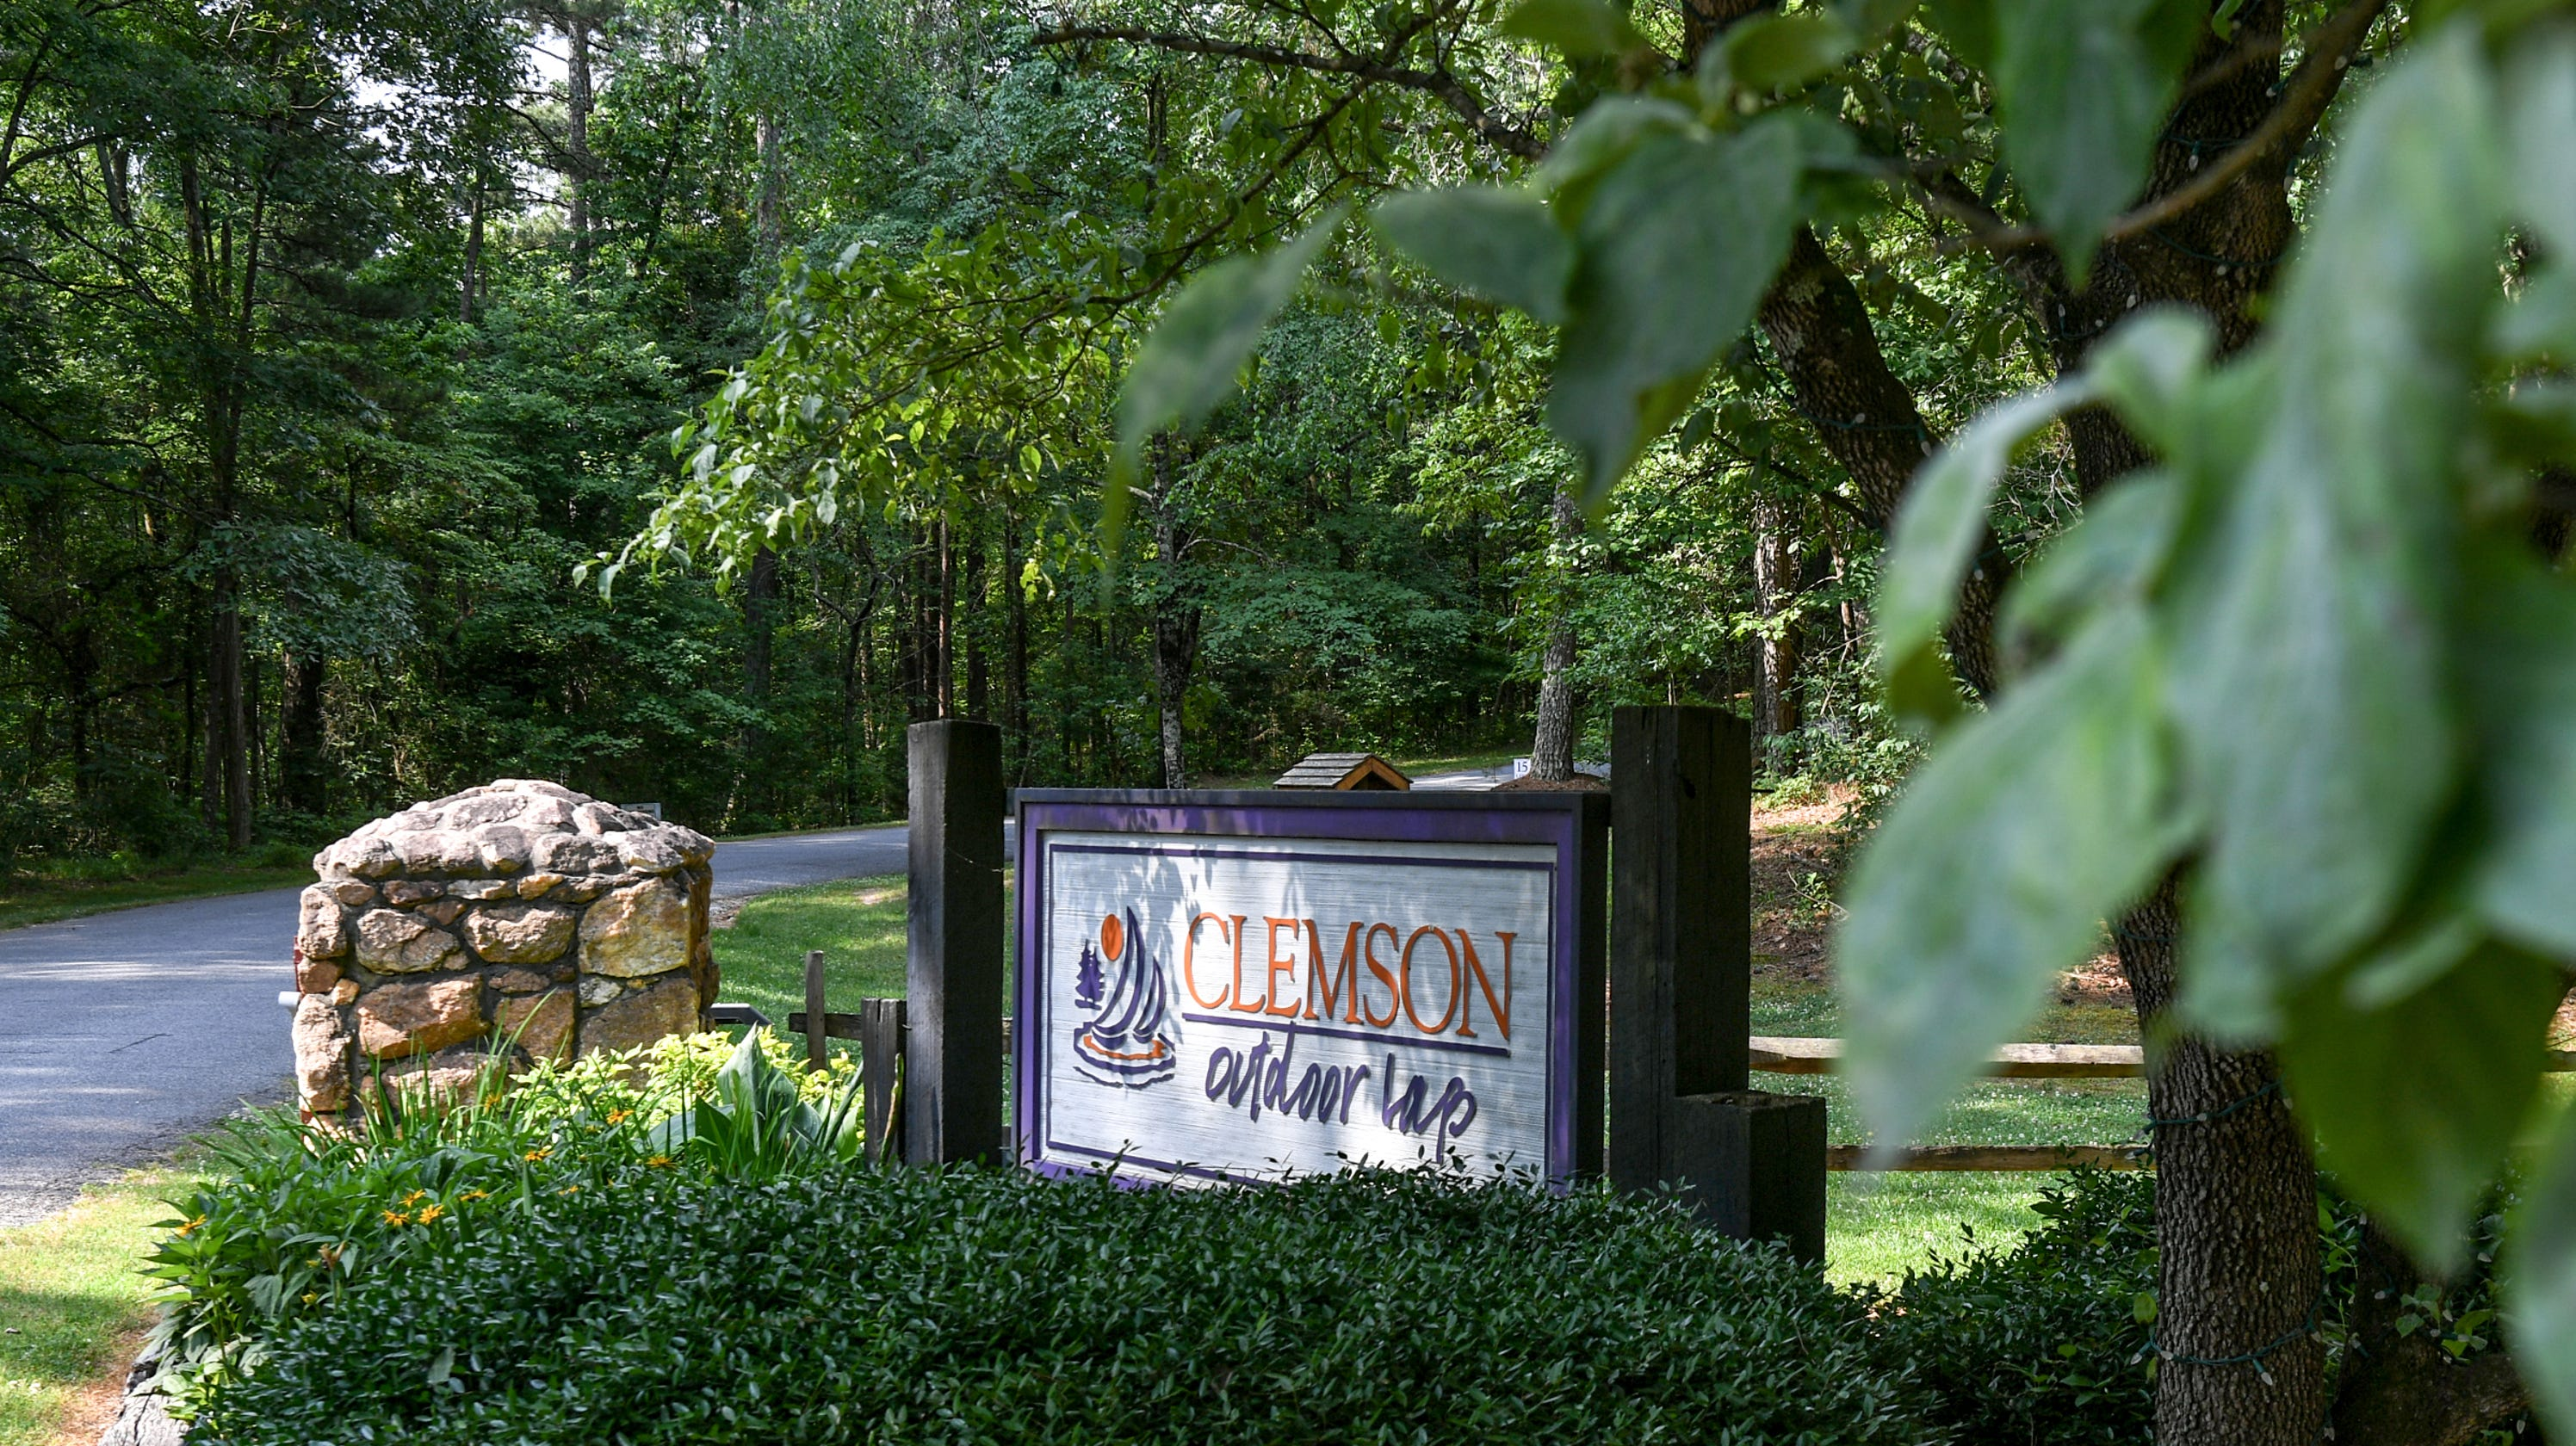 Clemson University Summer Camps Had Policy Violations